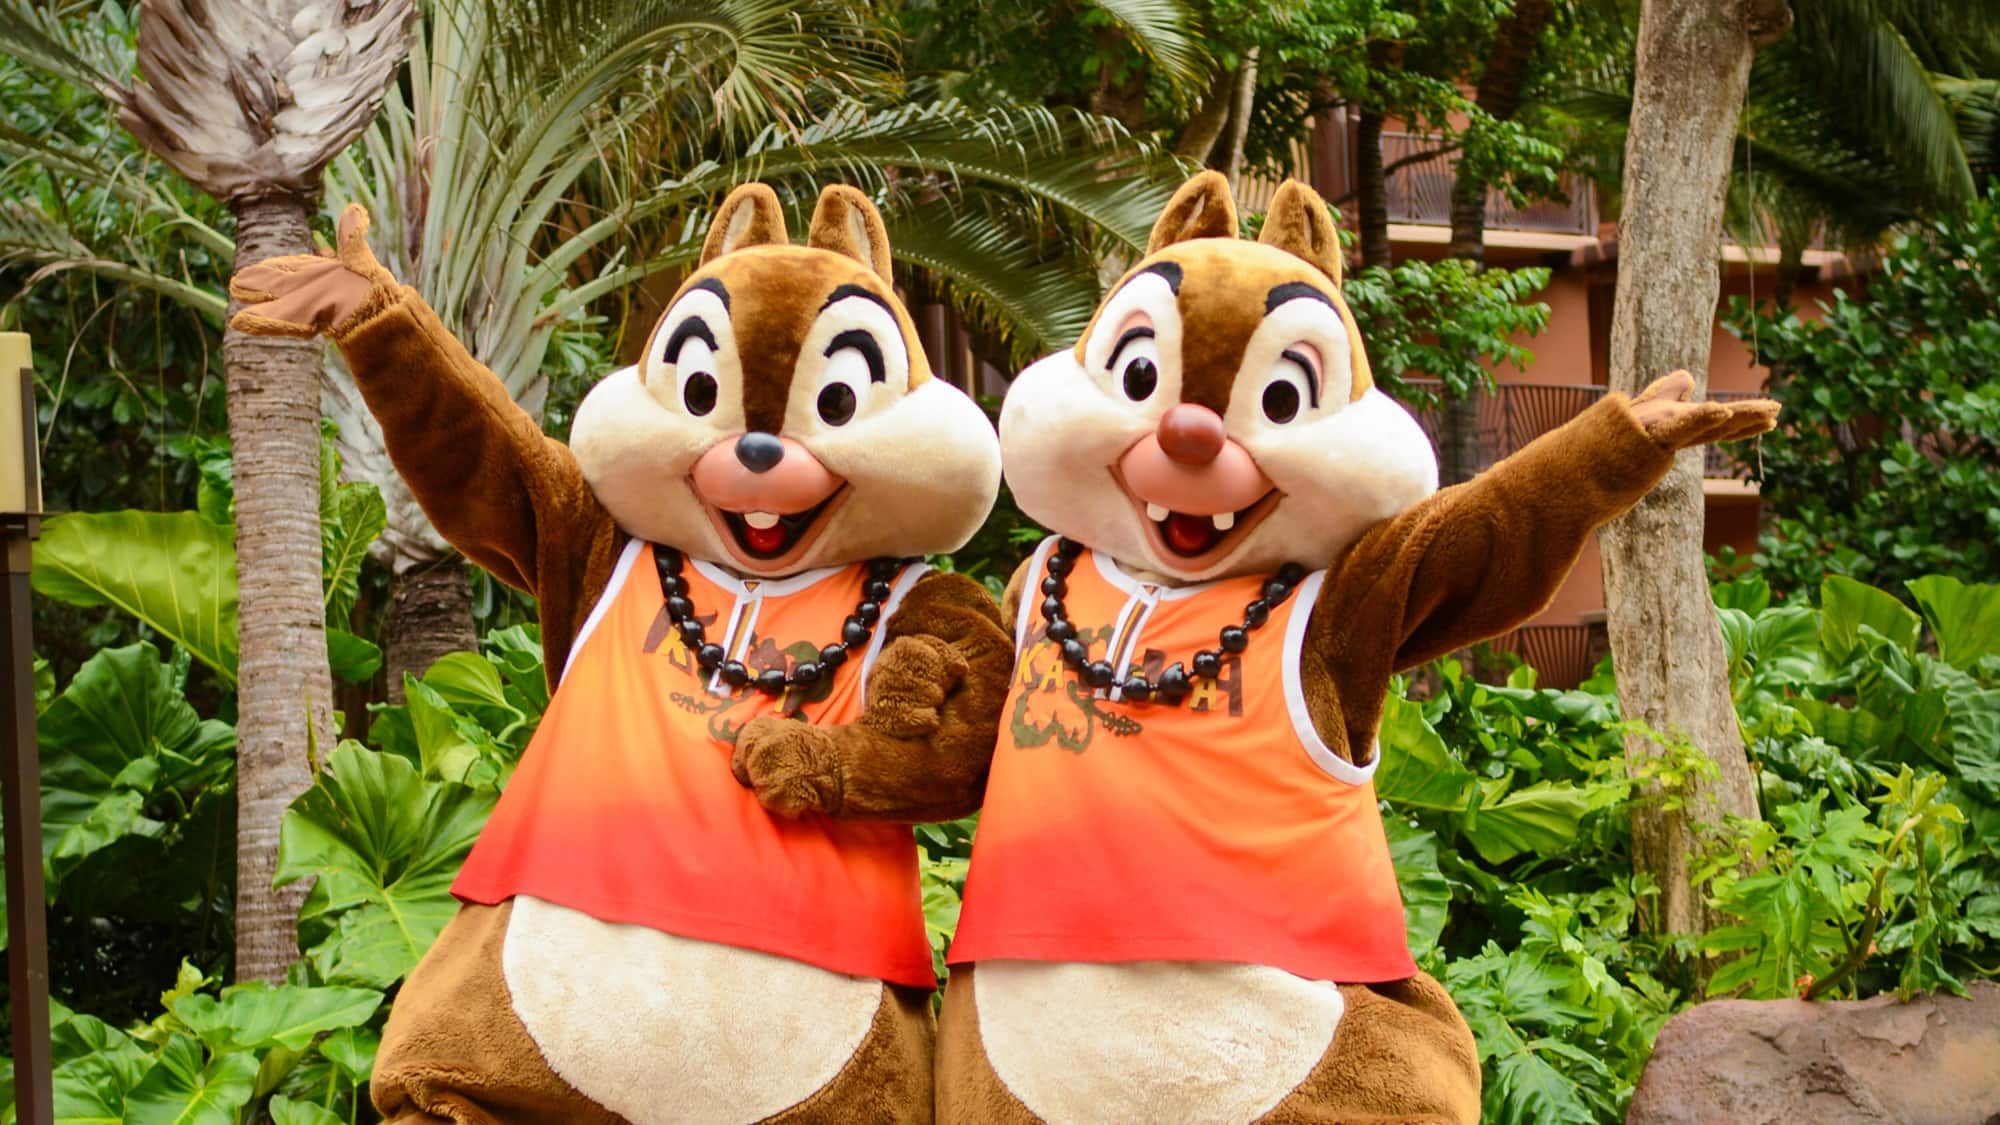 Chip and Dale, wearing matching tank tops and nut leis, pose on a path at Aulani Resort